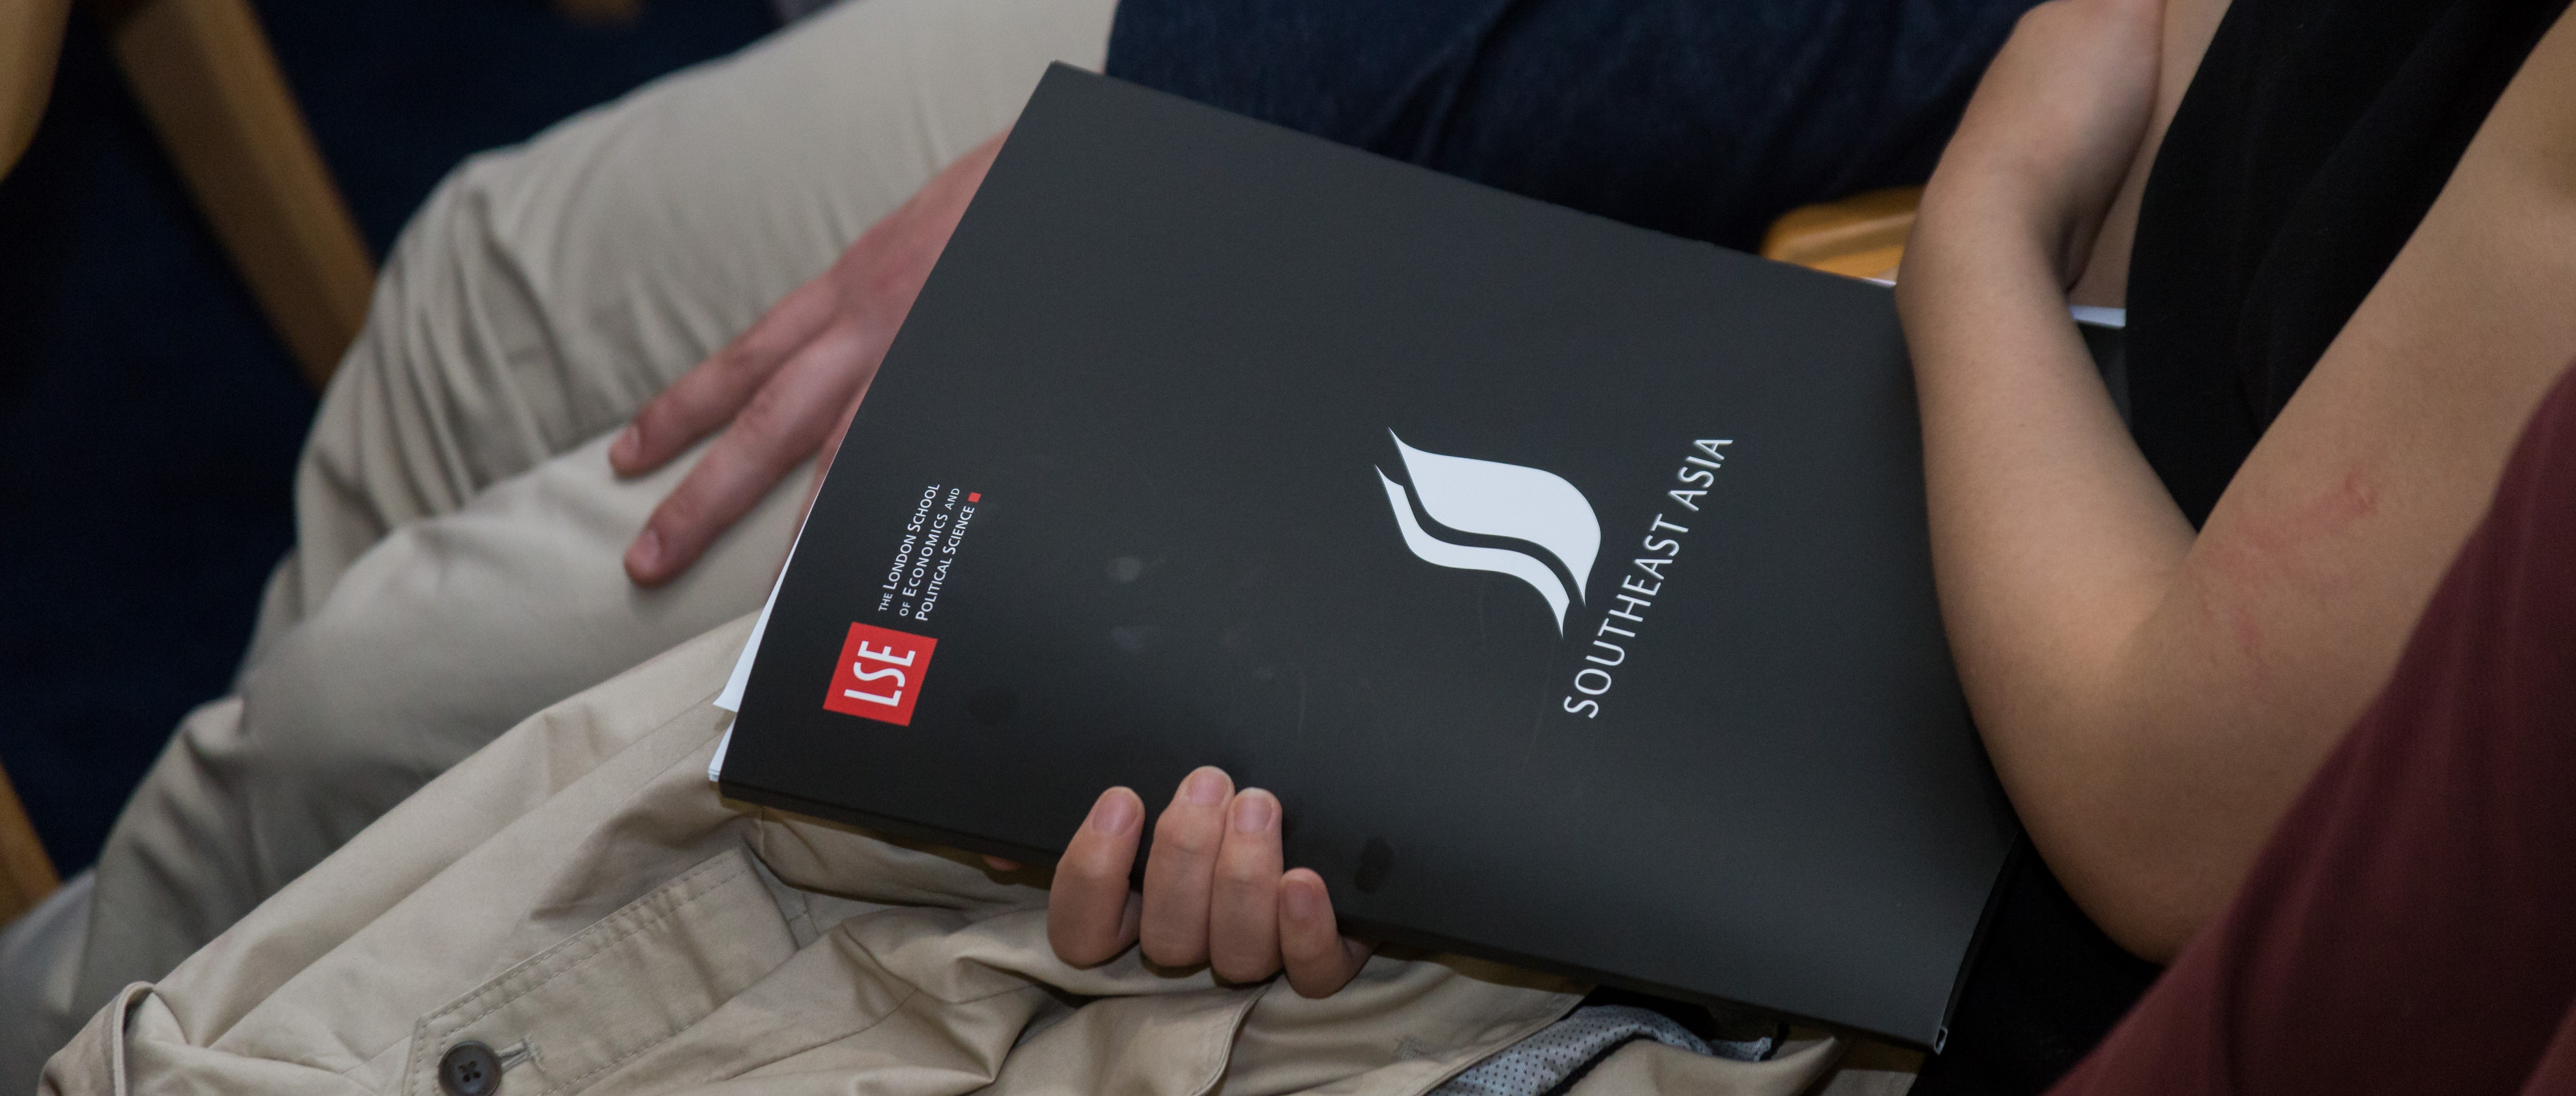 An audience member holding a branded LSE SEAC conference pack